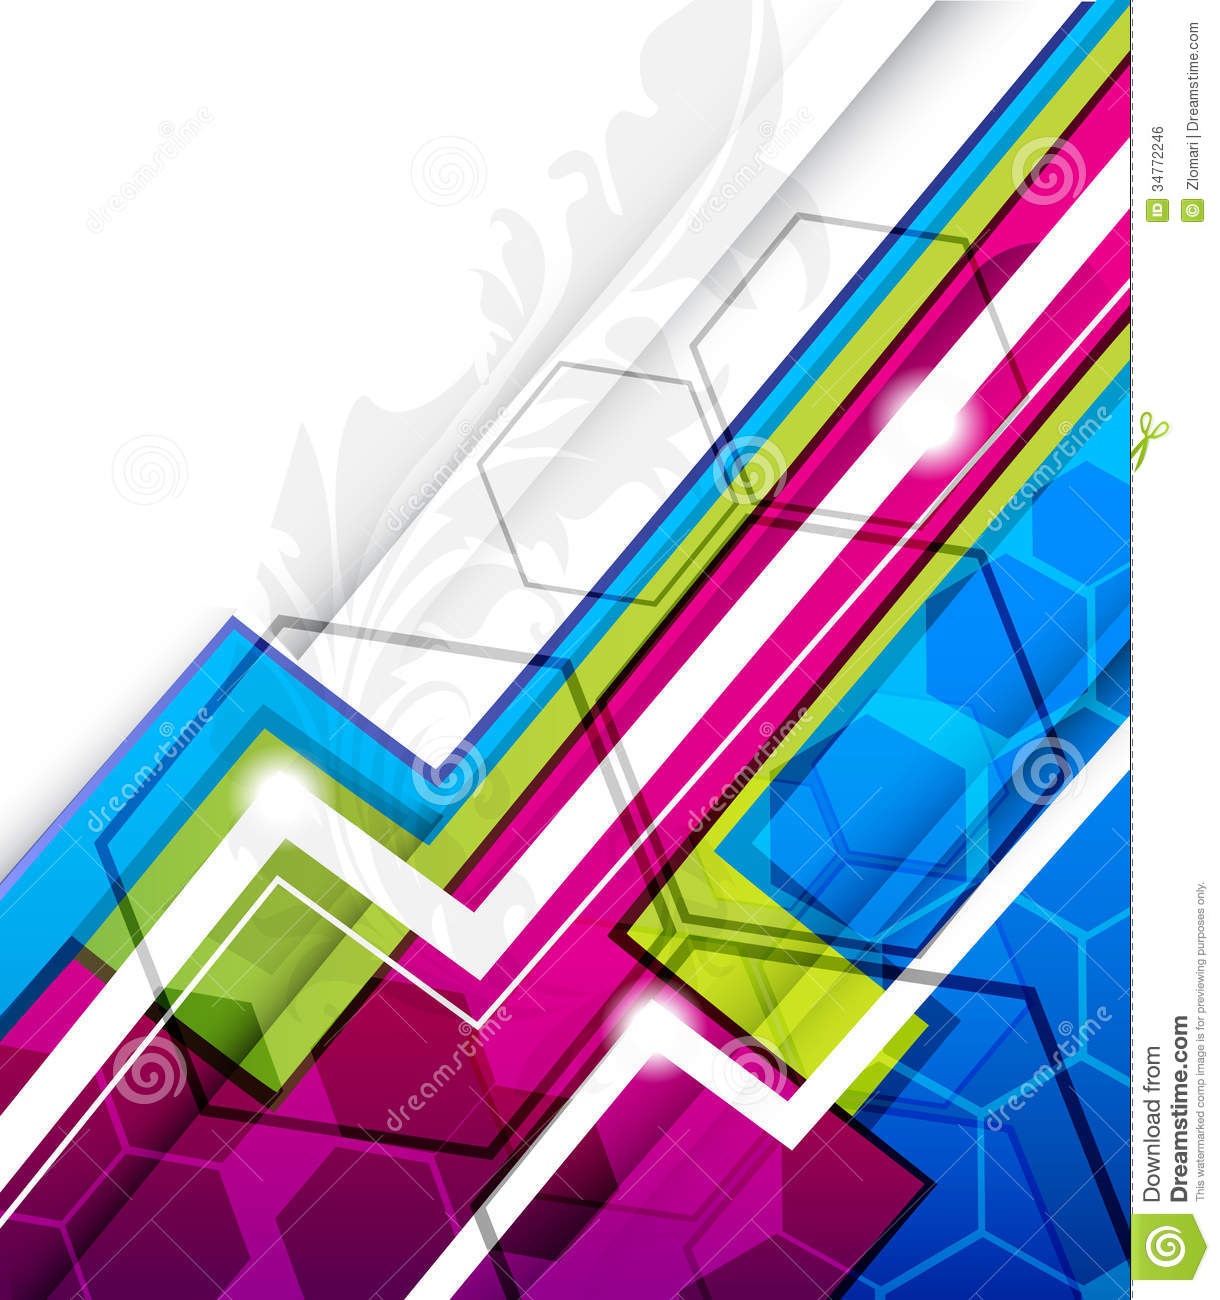 abstract background vector - photo #22